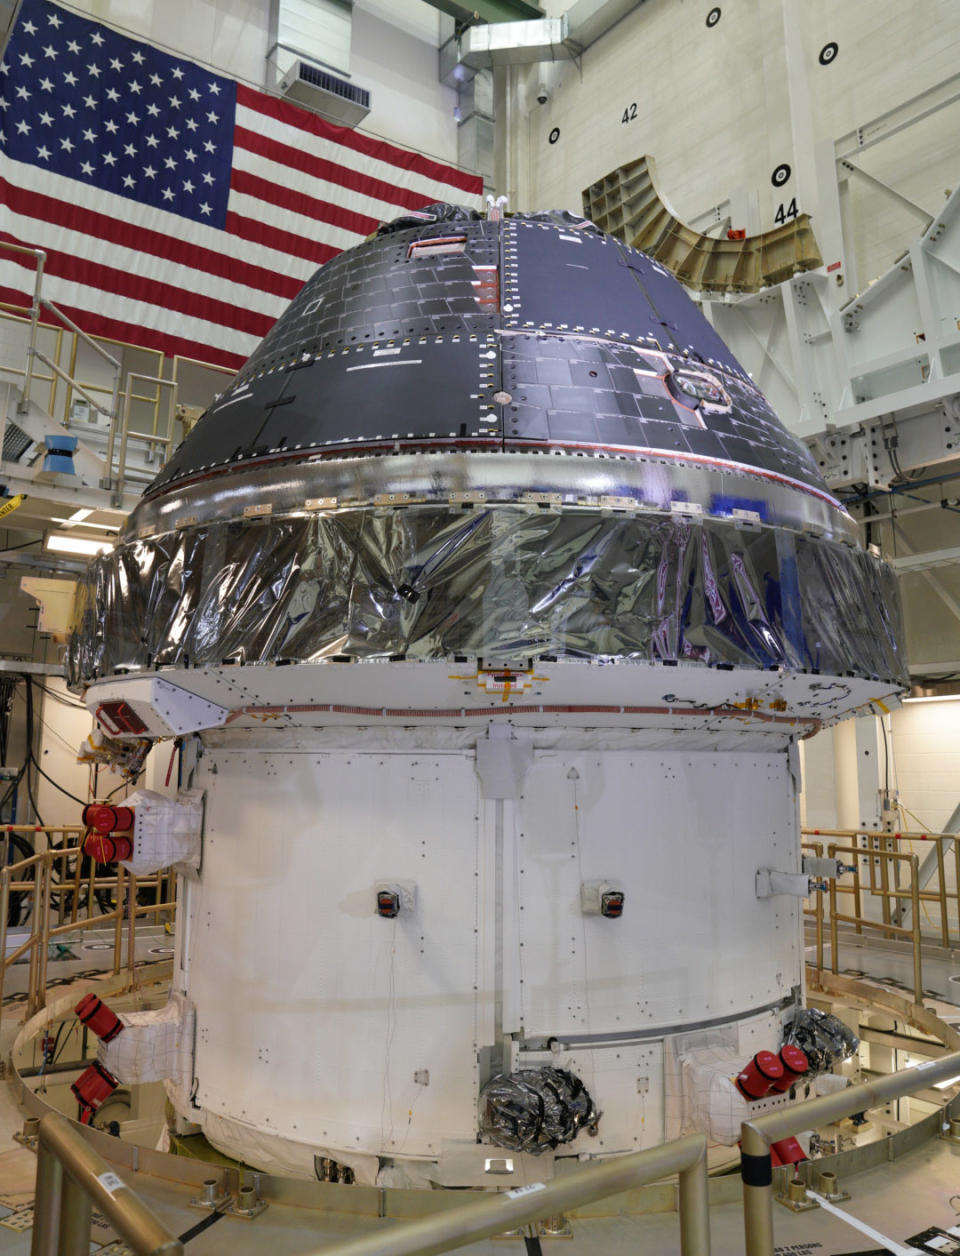 The completed Orion spacecraft crewe module stacked on top of the completed service module in the Operations and Checkout Building at the NASA Kennedy Space Center.